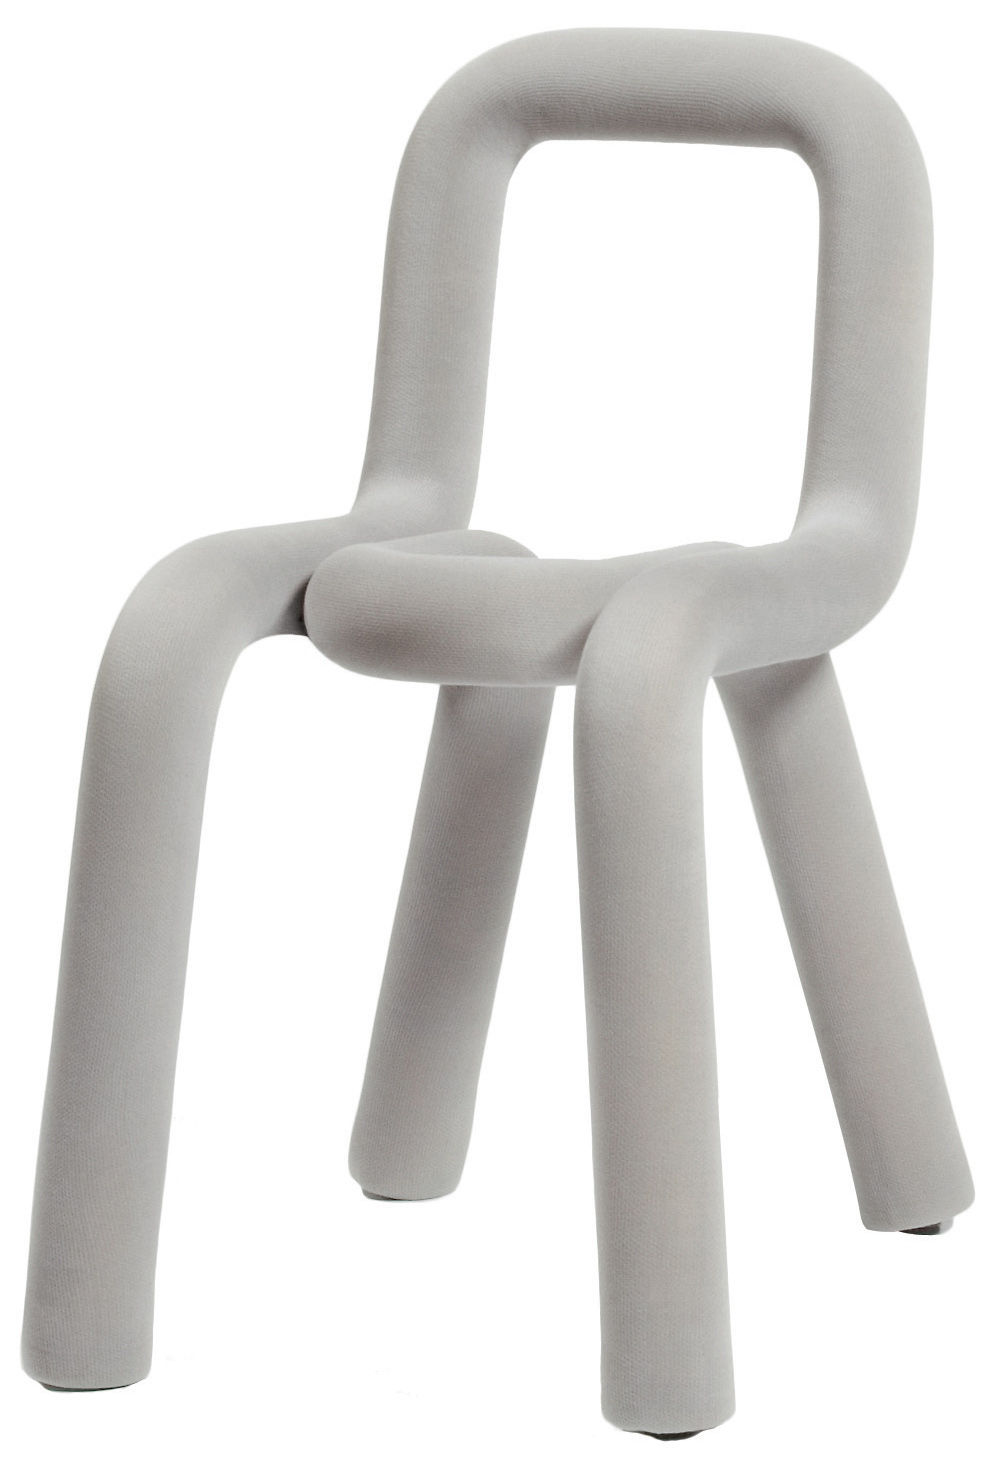 Furniture - Chairs - Bold Padded chair - Fabric by Moustache - Light grey - Fabric, Foam, Steel